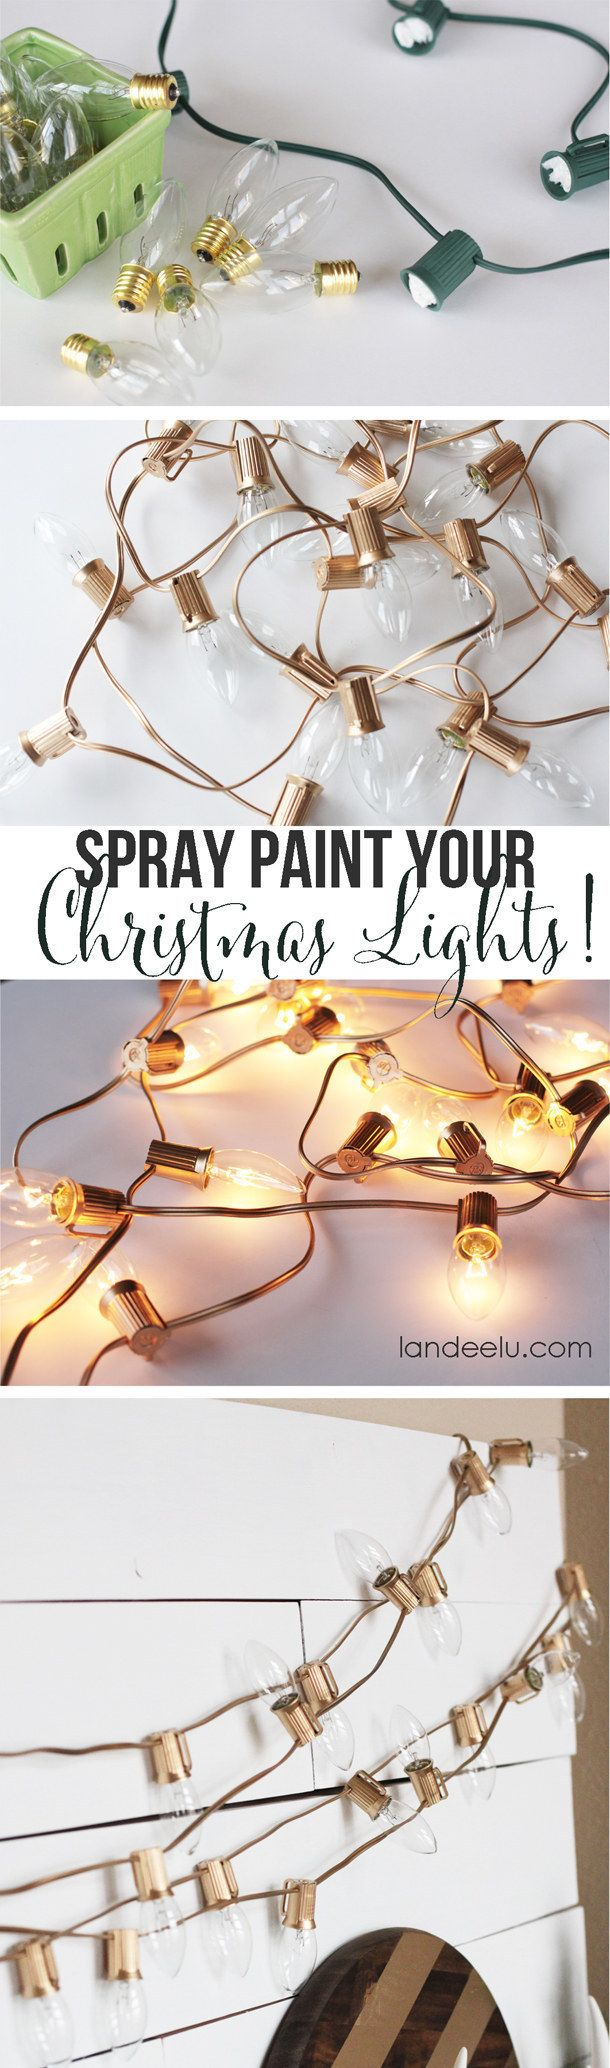 Handmade christmas robin decoration claire hurd design - Make The Lights Part Of The Centerpiece With A Couple Coats Of Gold Spray Paint